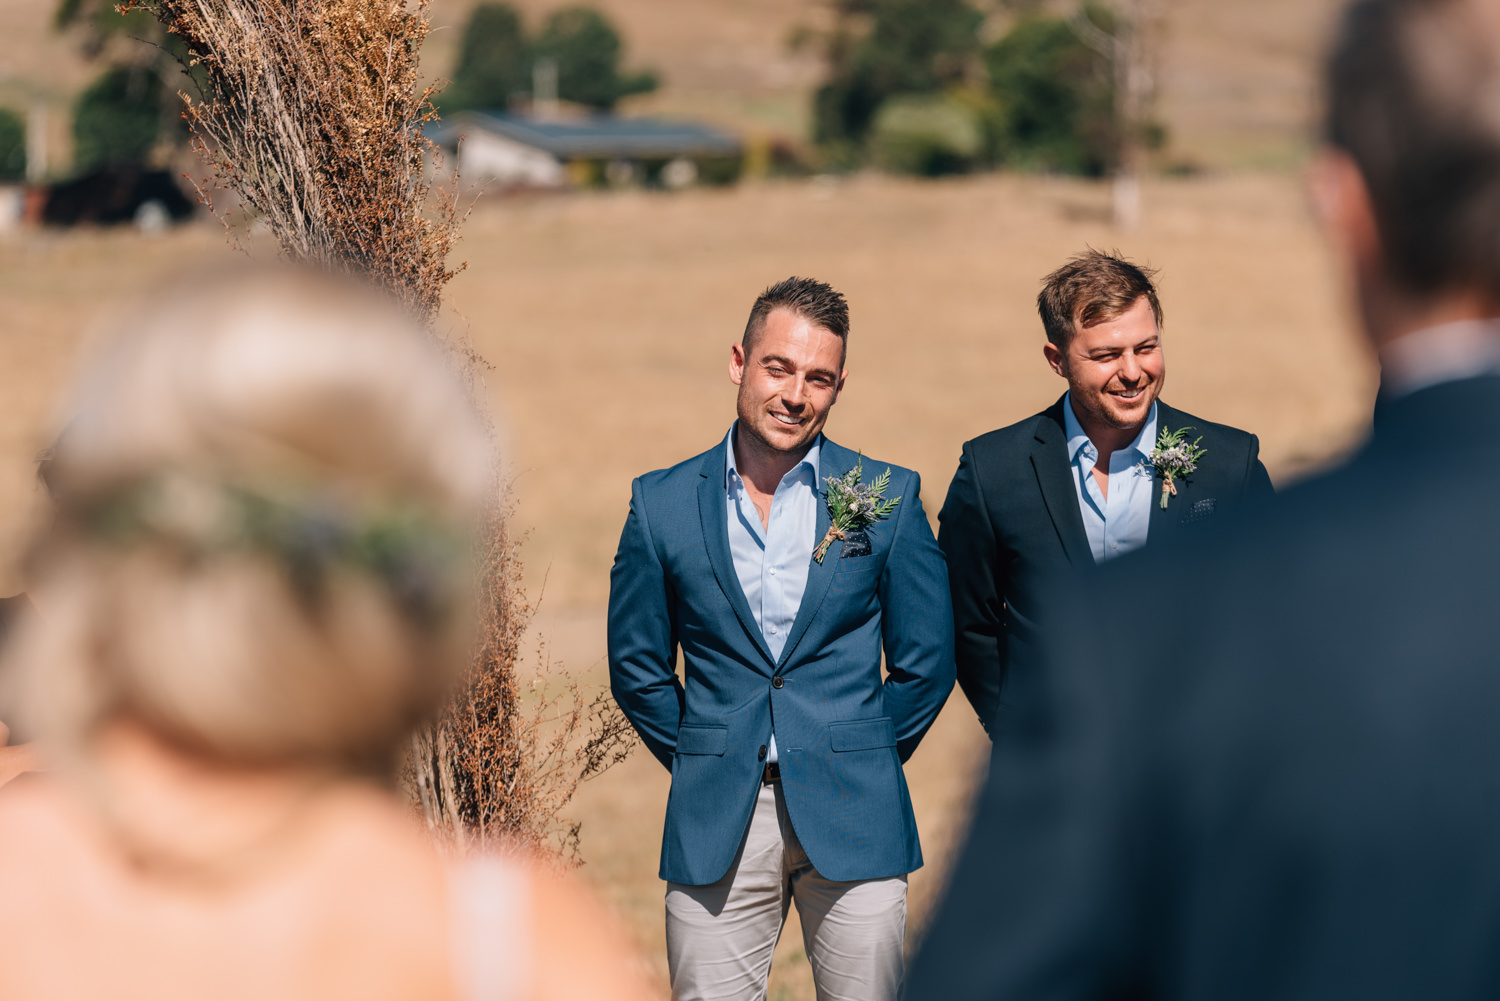 Launceston-Wedding-Photographer-49.jpg